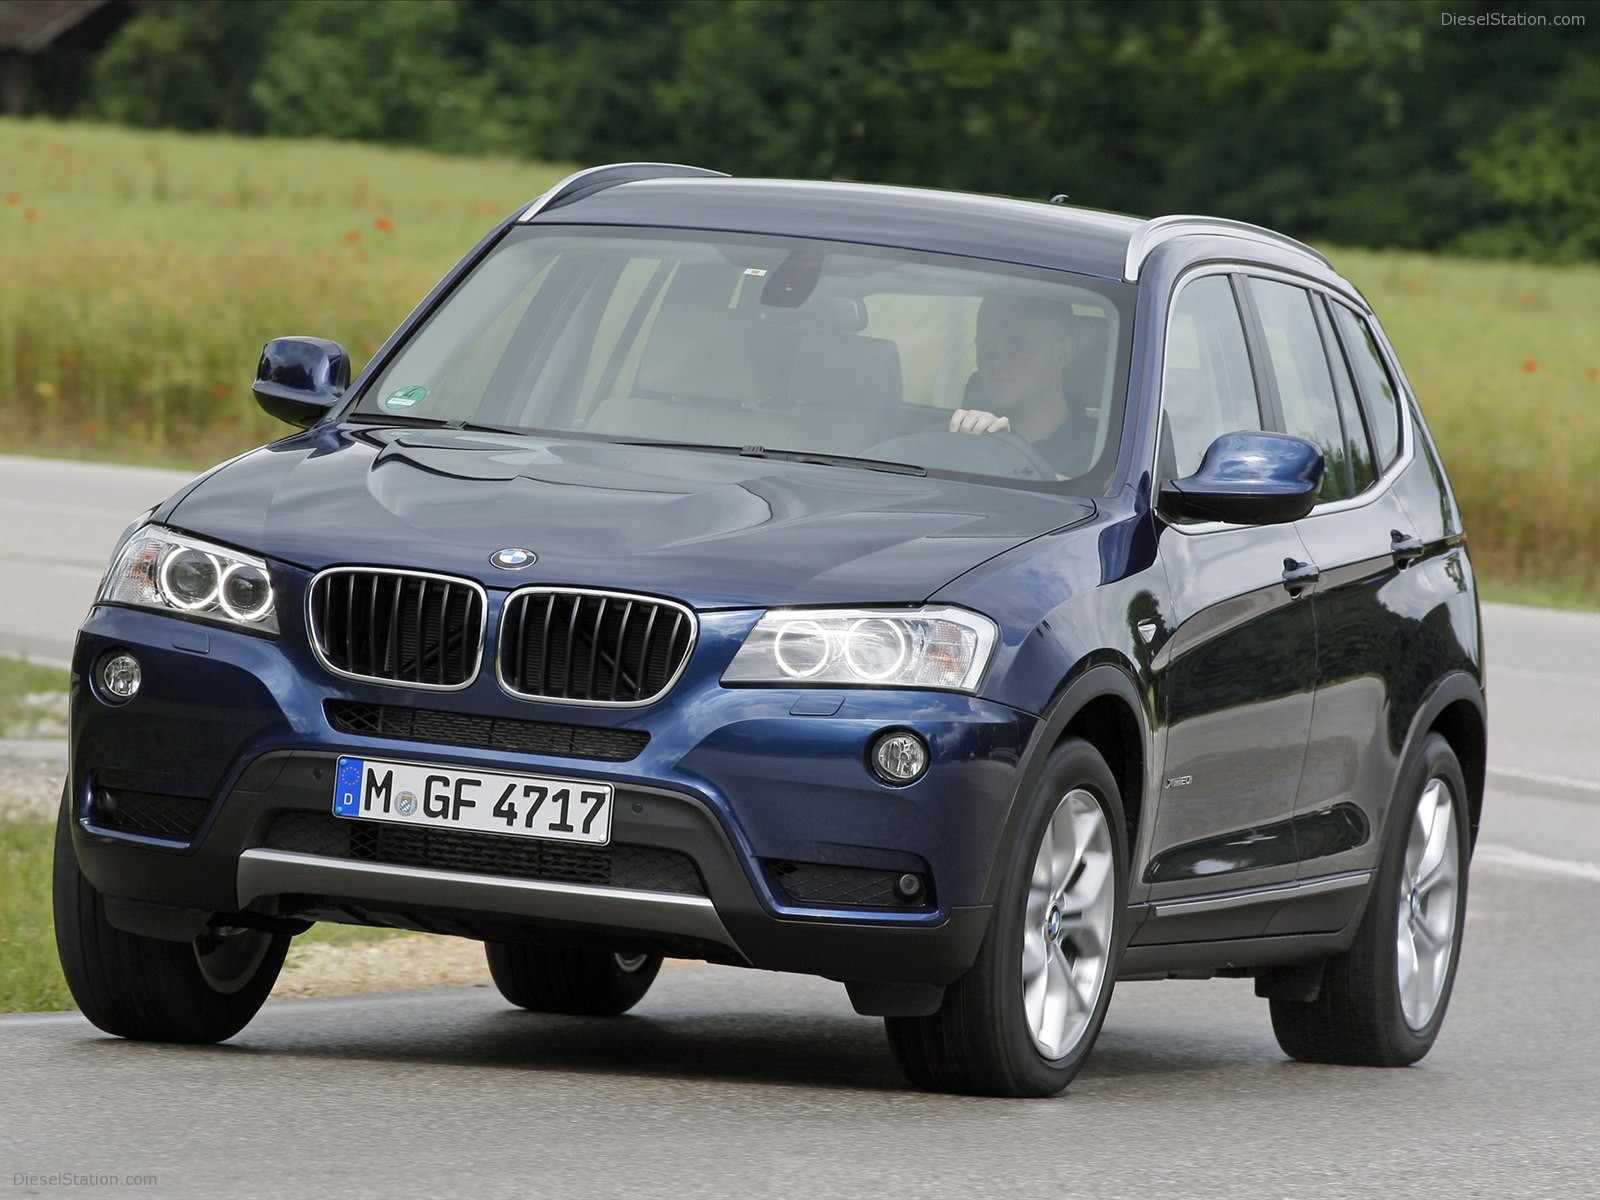 BMW X3 sDrive20i 2012 photo - 9